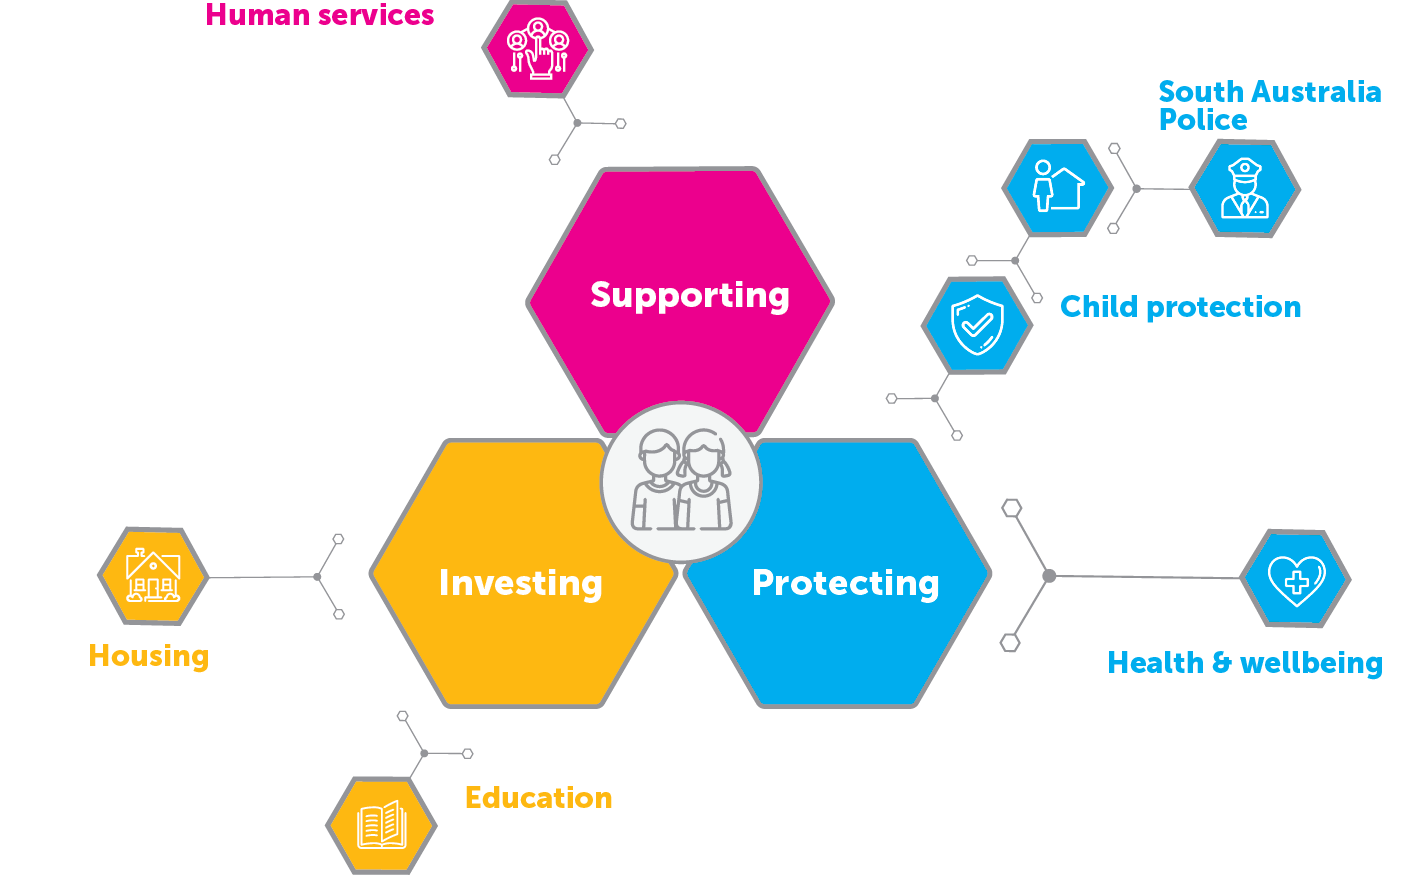 This diagram shows how government agencies connect to safe and well. Housing and education connect to Investing, Health and wellbeing, SAPOL and Child Protection connect to Protecting, and Human services connect to Supporting.